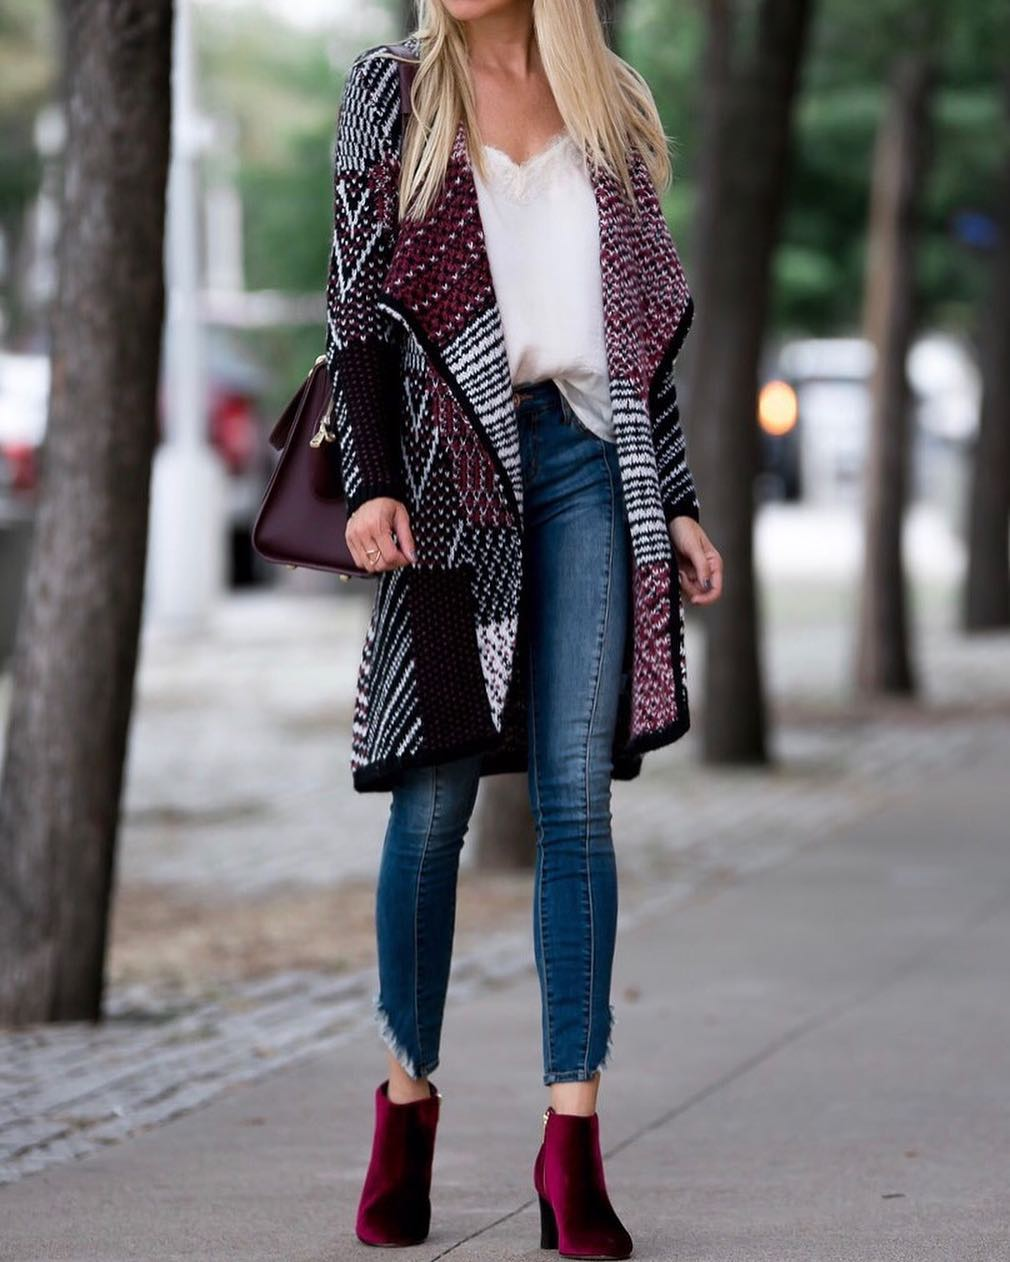 Perfect Fall Outfit With Velvet Booties